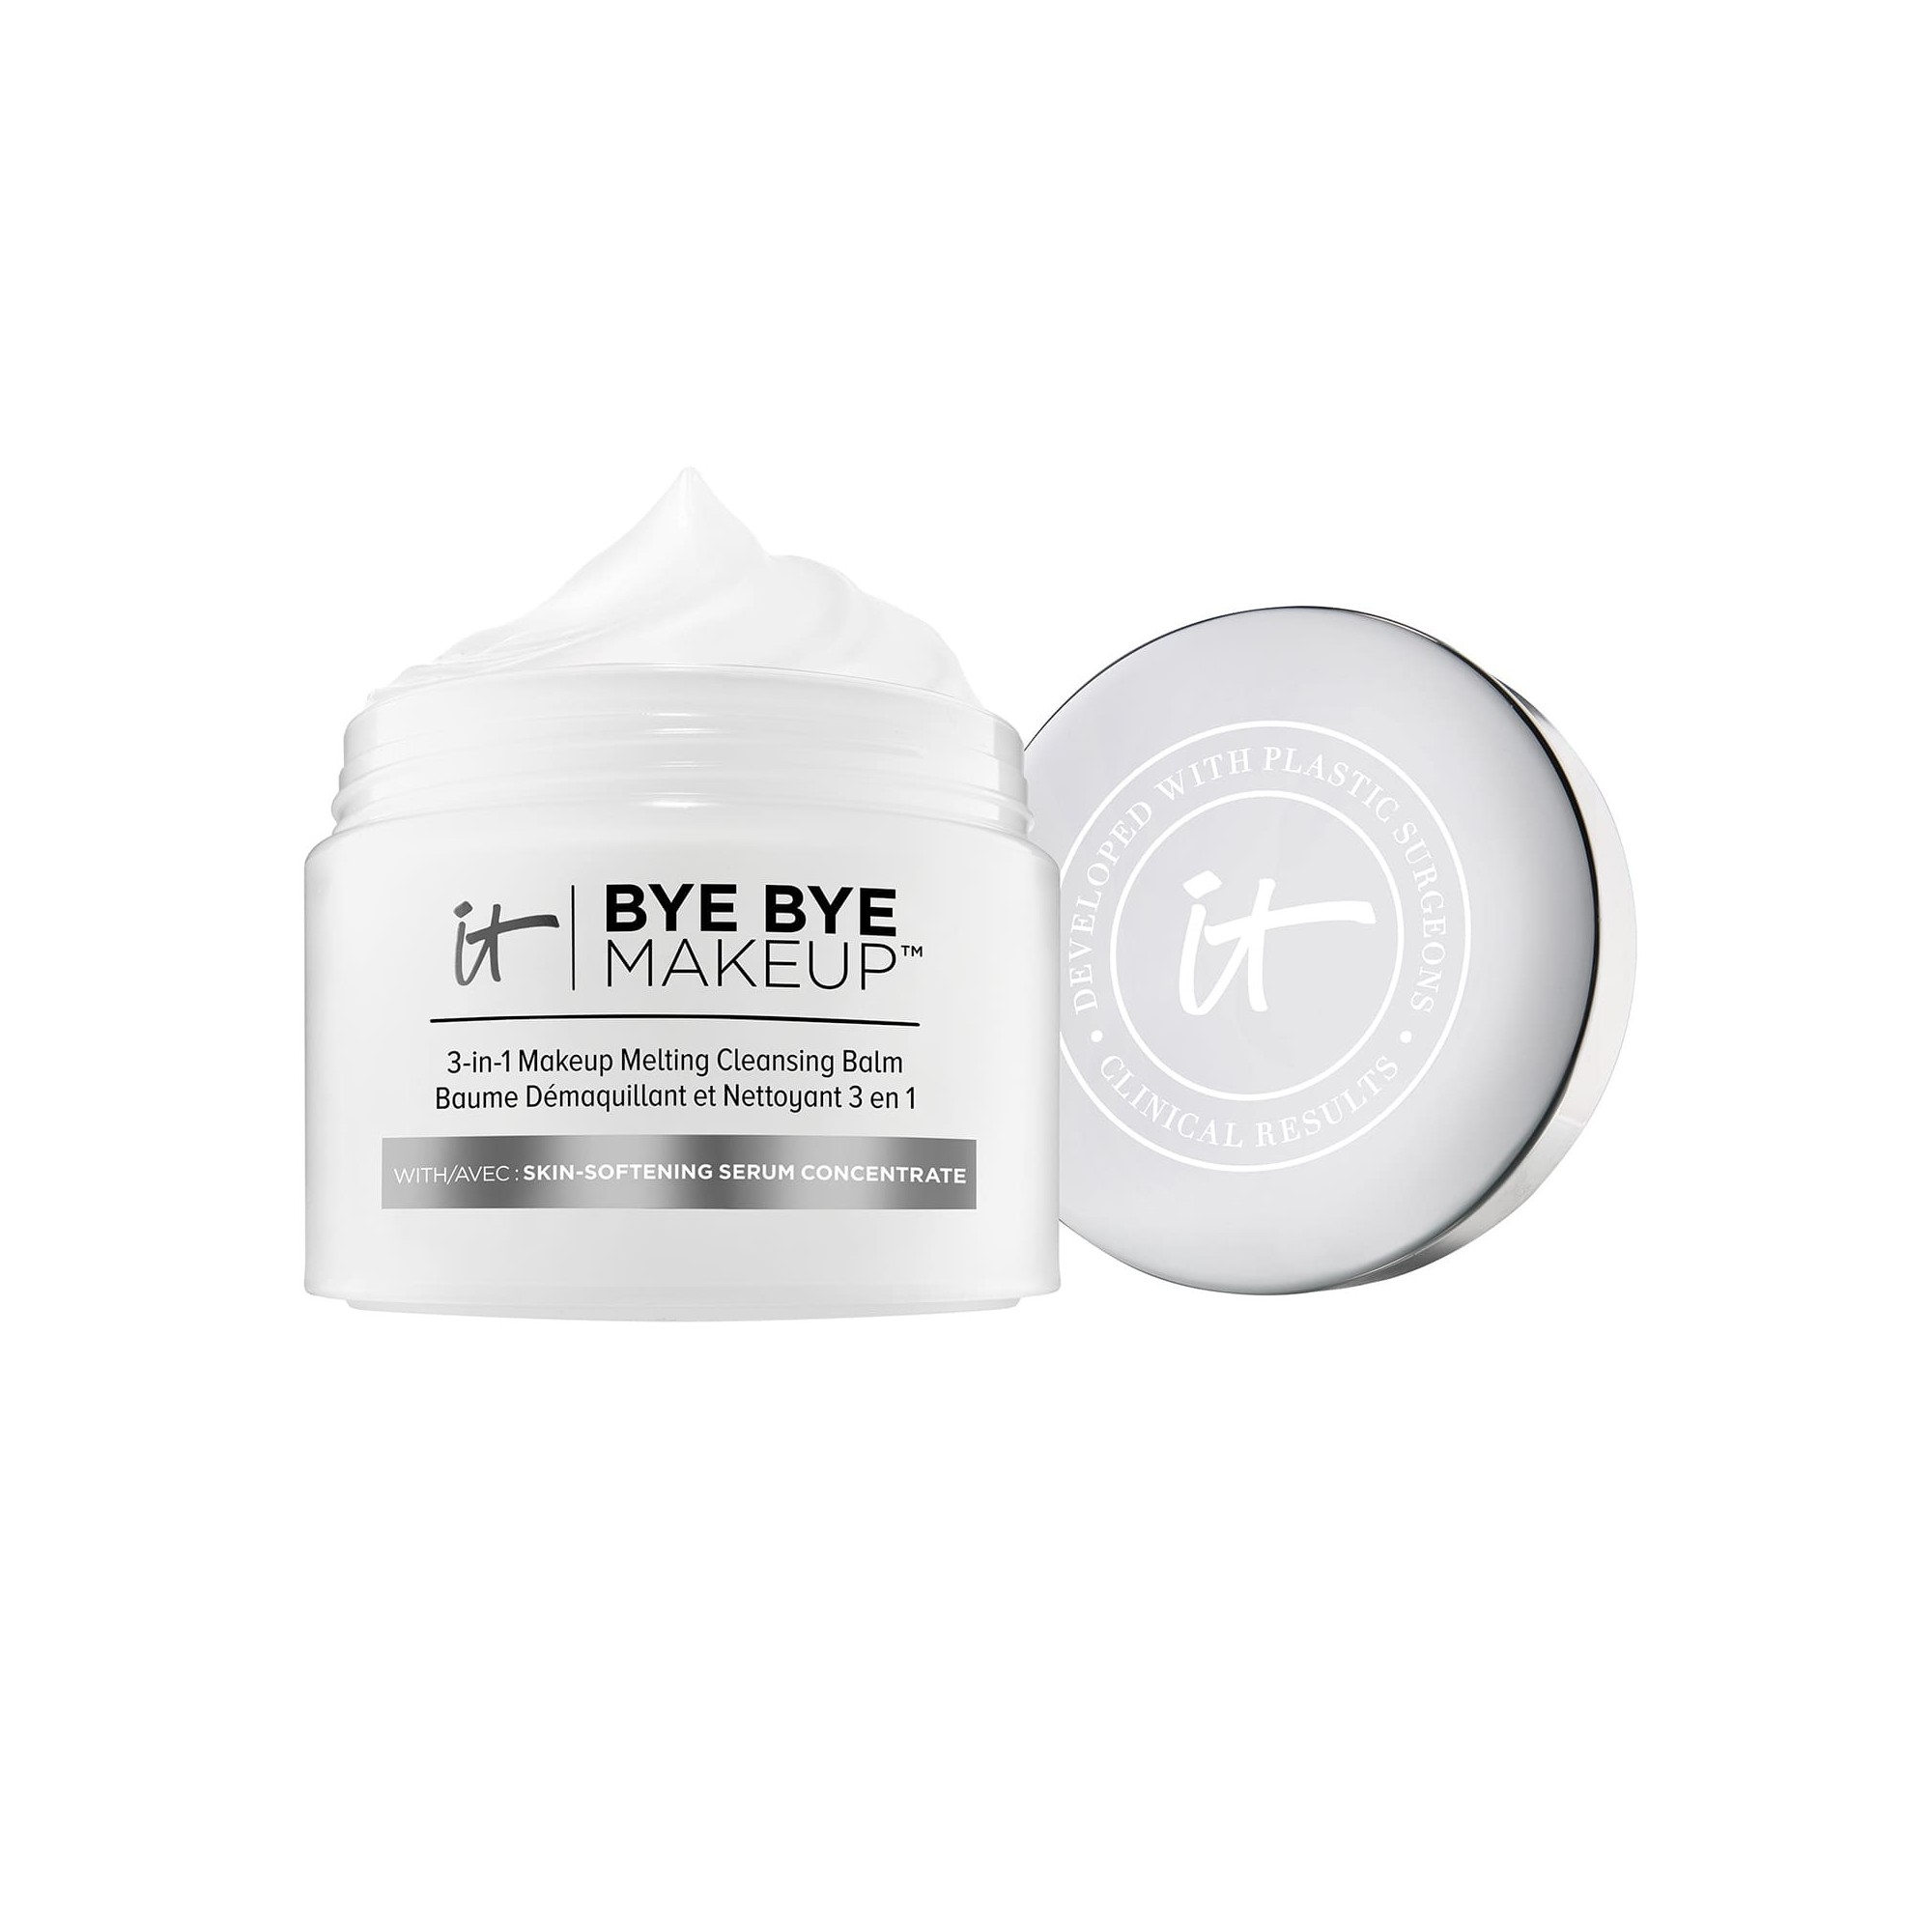 IT Cosmetics Bye Bye Makeup 3-in-1 Makeup Melting Balm